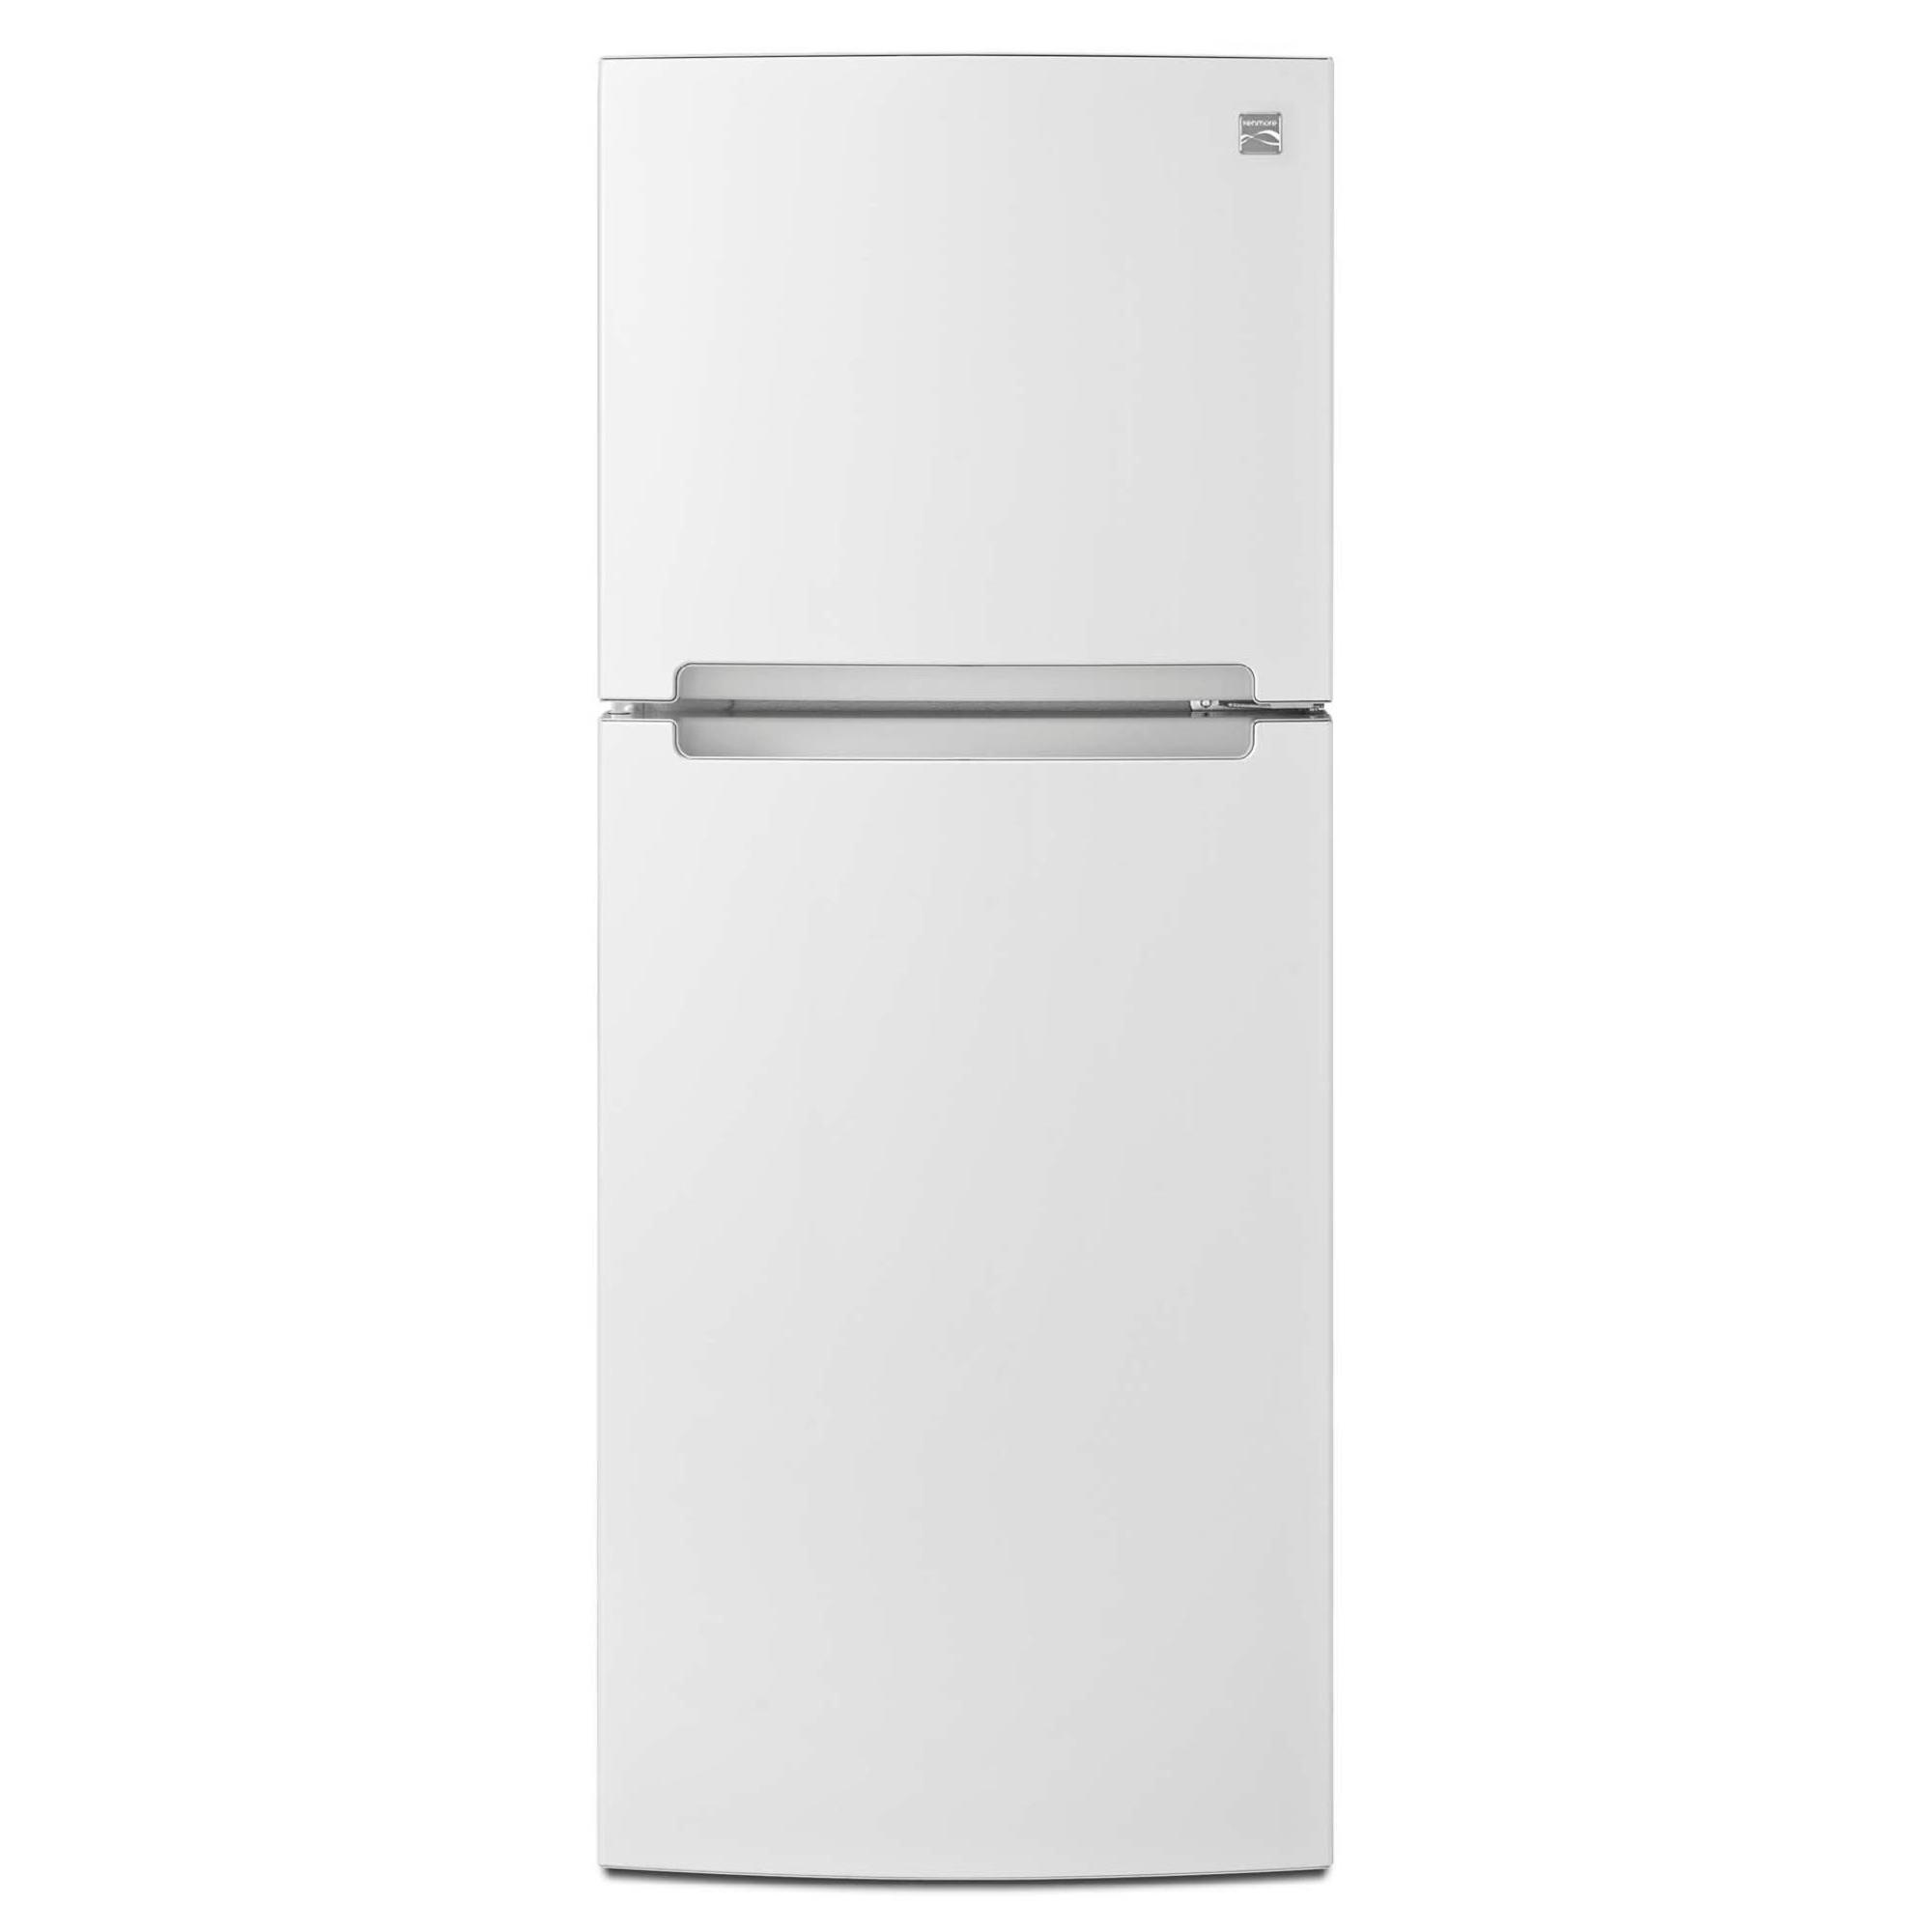 Kenmore 76392 10.7 cu. ft. Top-Freezer Refrigerator w/ Humidity-Controlled Crisper - White